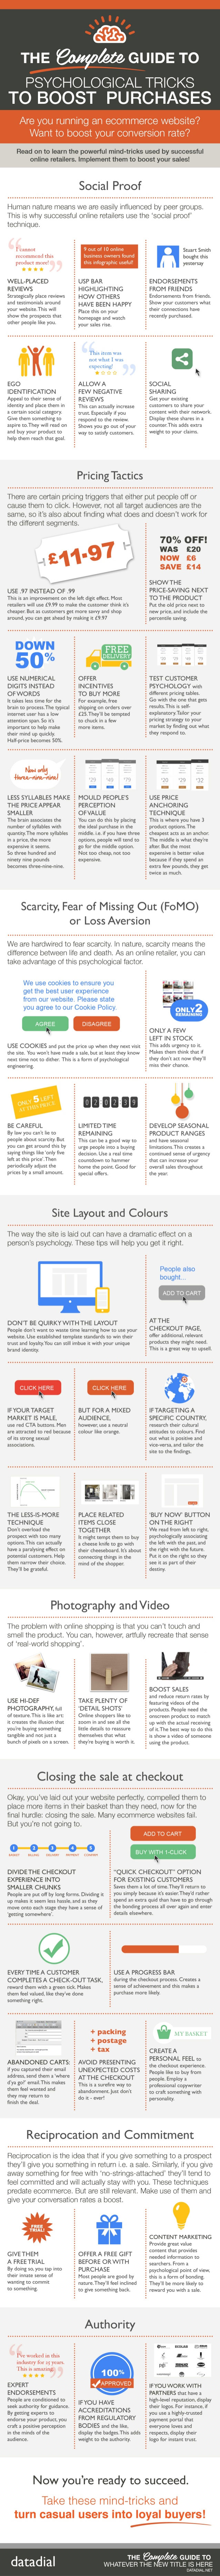 ecommerce-psychology1